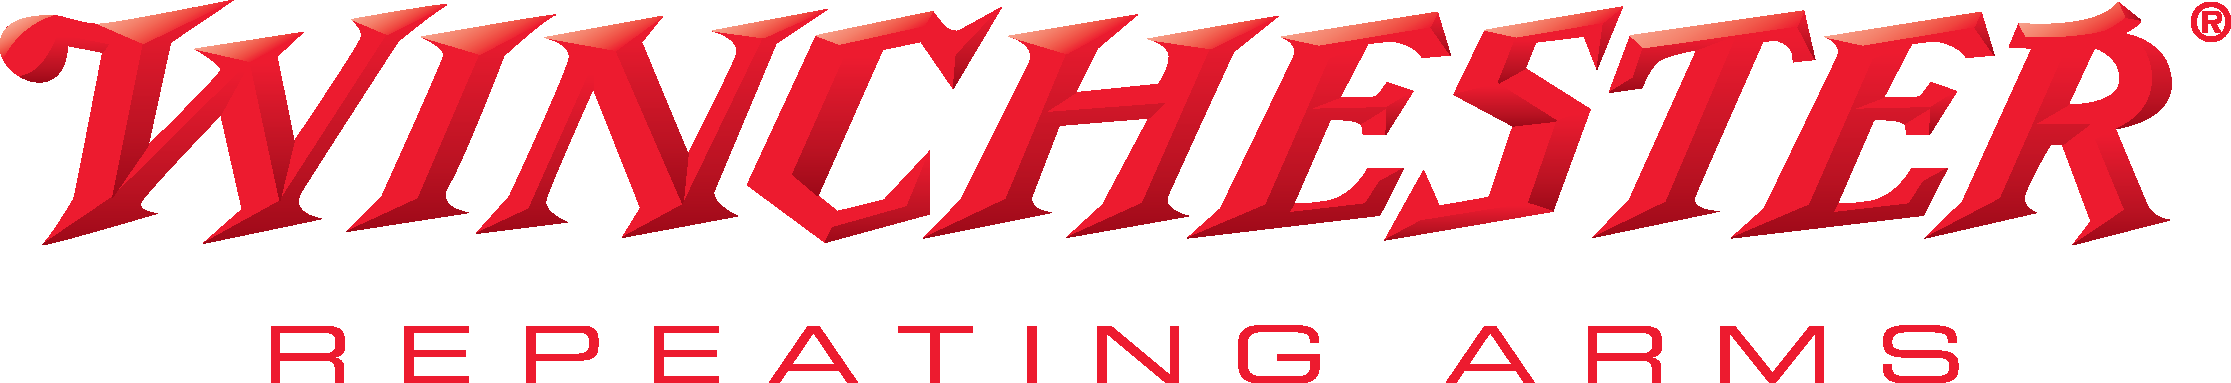 Winchester Repeating Arms Logos